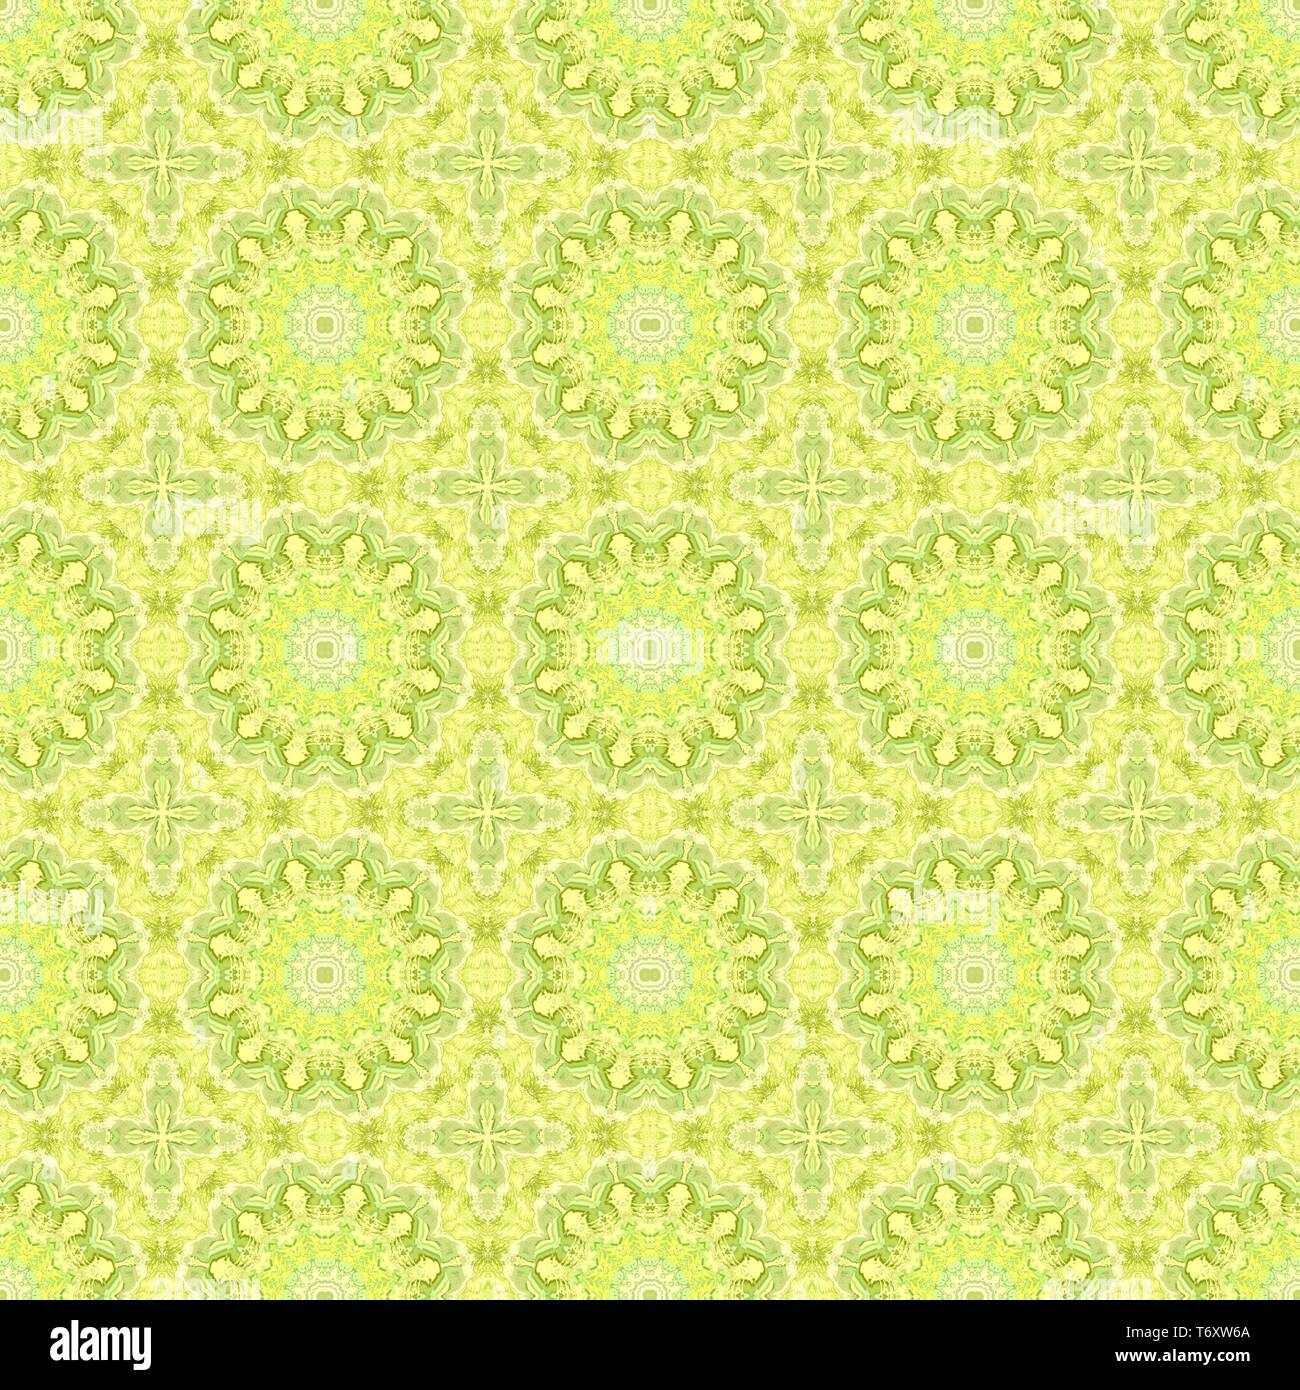 Seamless Wallpaper Pattern With Khaki Lemon Chiffon And Yellow